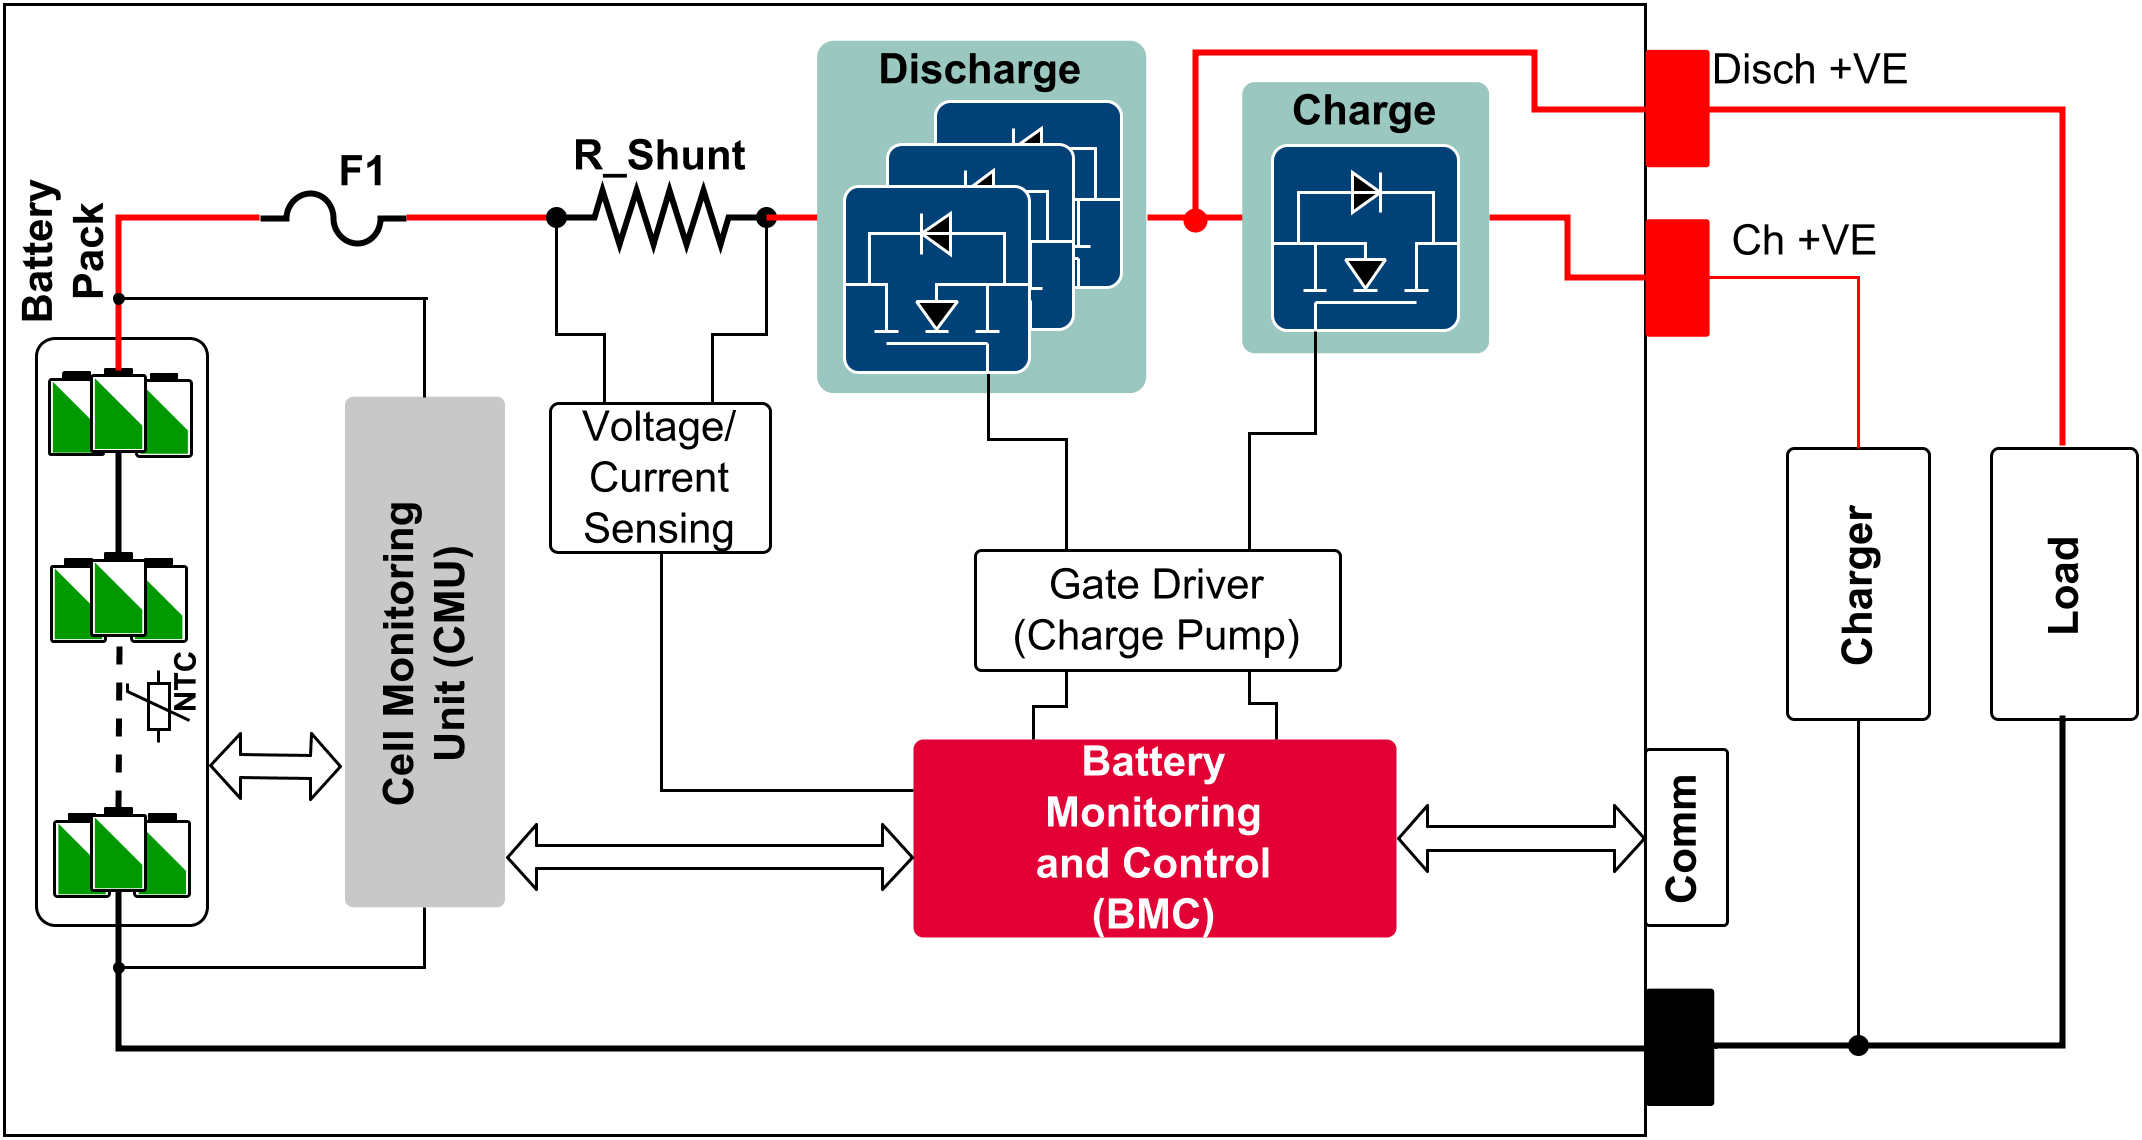 https://edit.infineon.com/cms/_images/application/solutions/BMS-Separate-Charge-and-Discharge-Port-with-HS-Protection.PNG